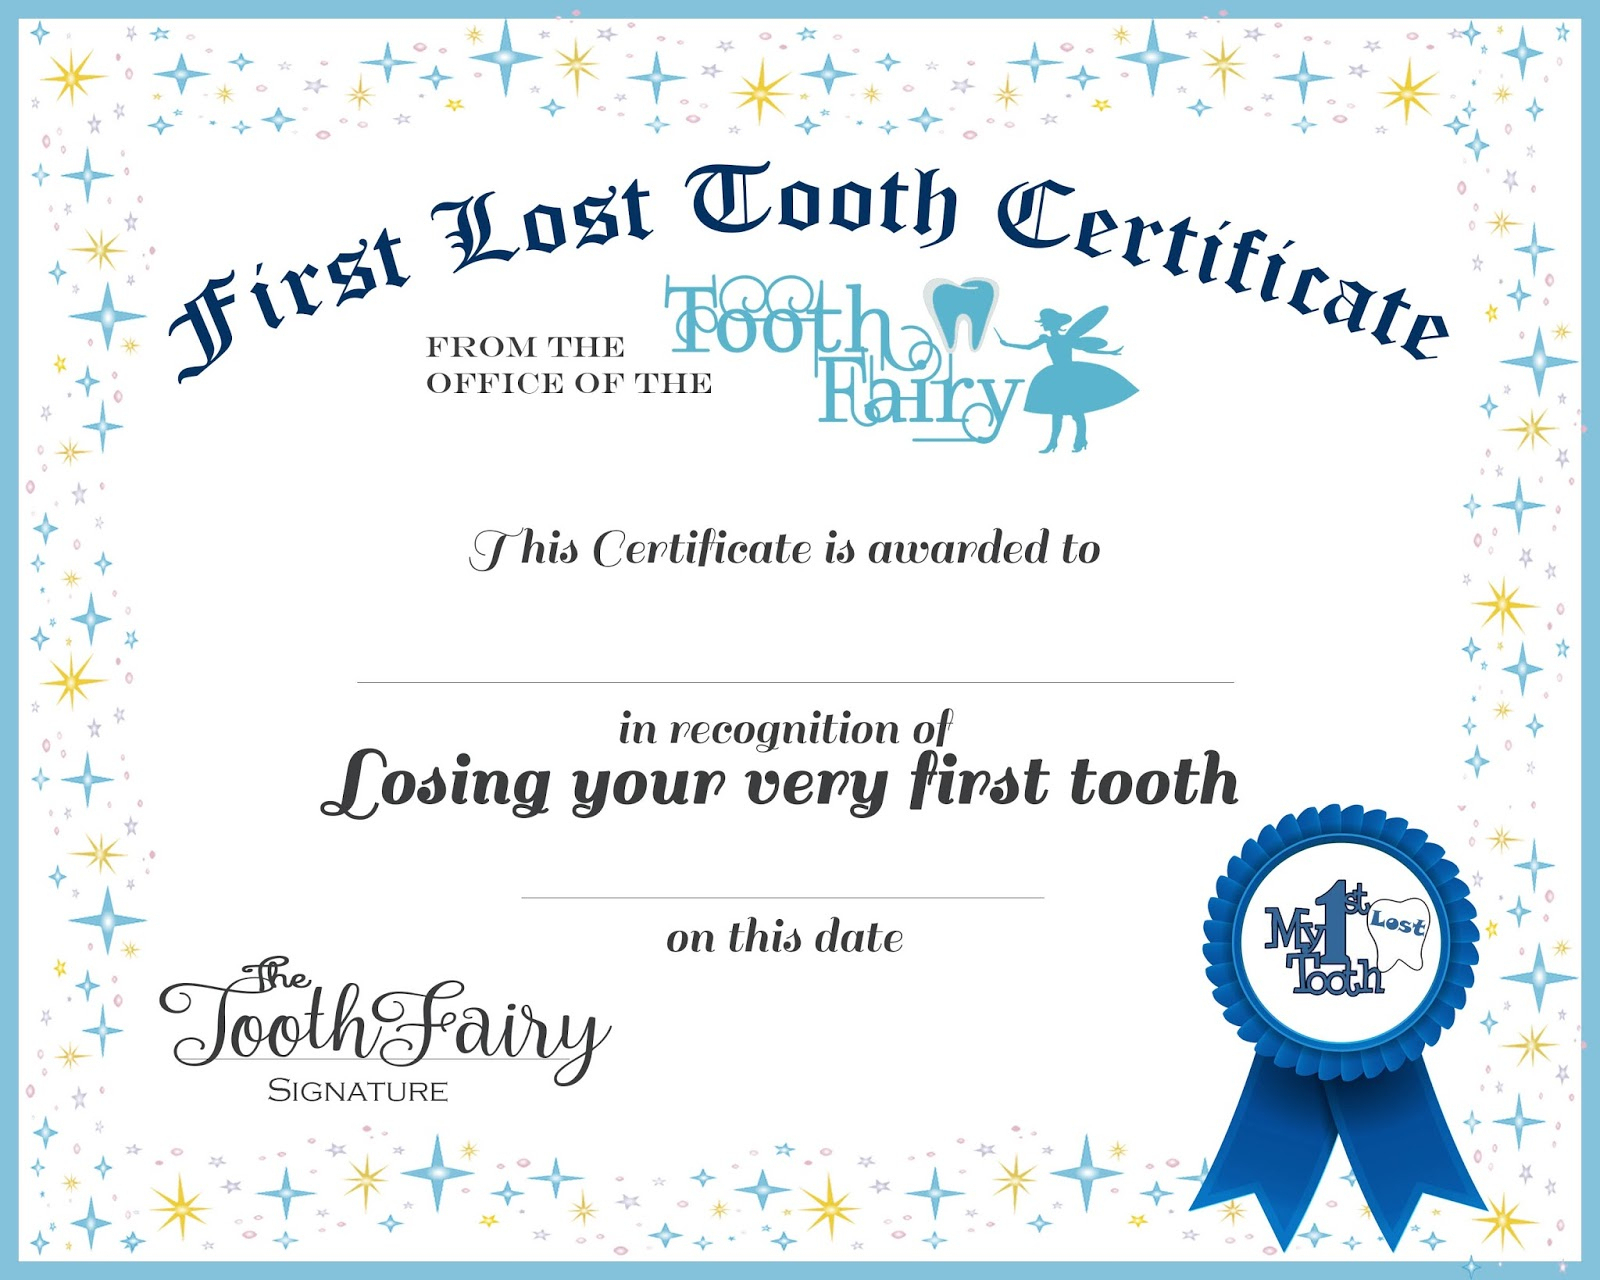 Easy Tooth Fairy Ideas Tips For Parents Free Printables For Tooth - Free Printable Tooth Fairy Certificate